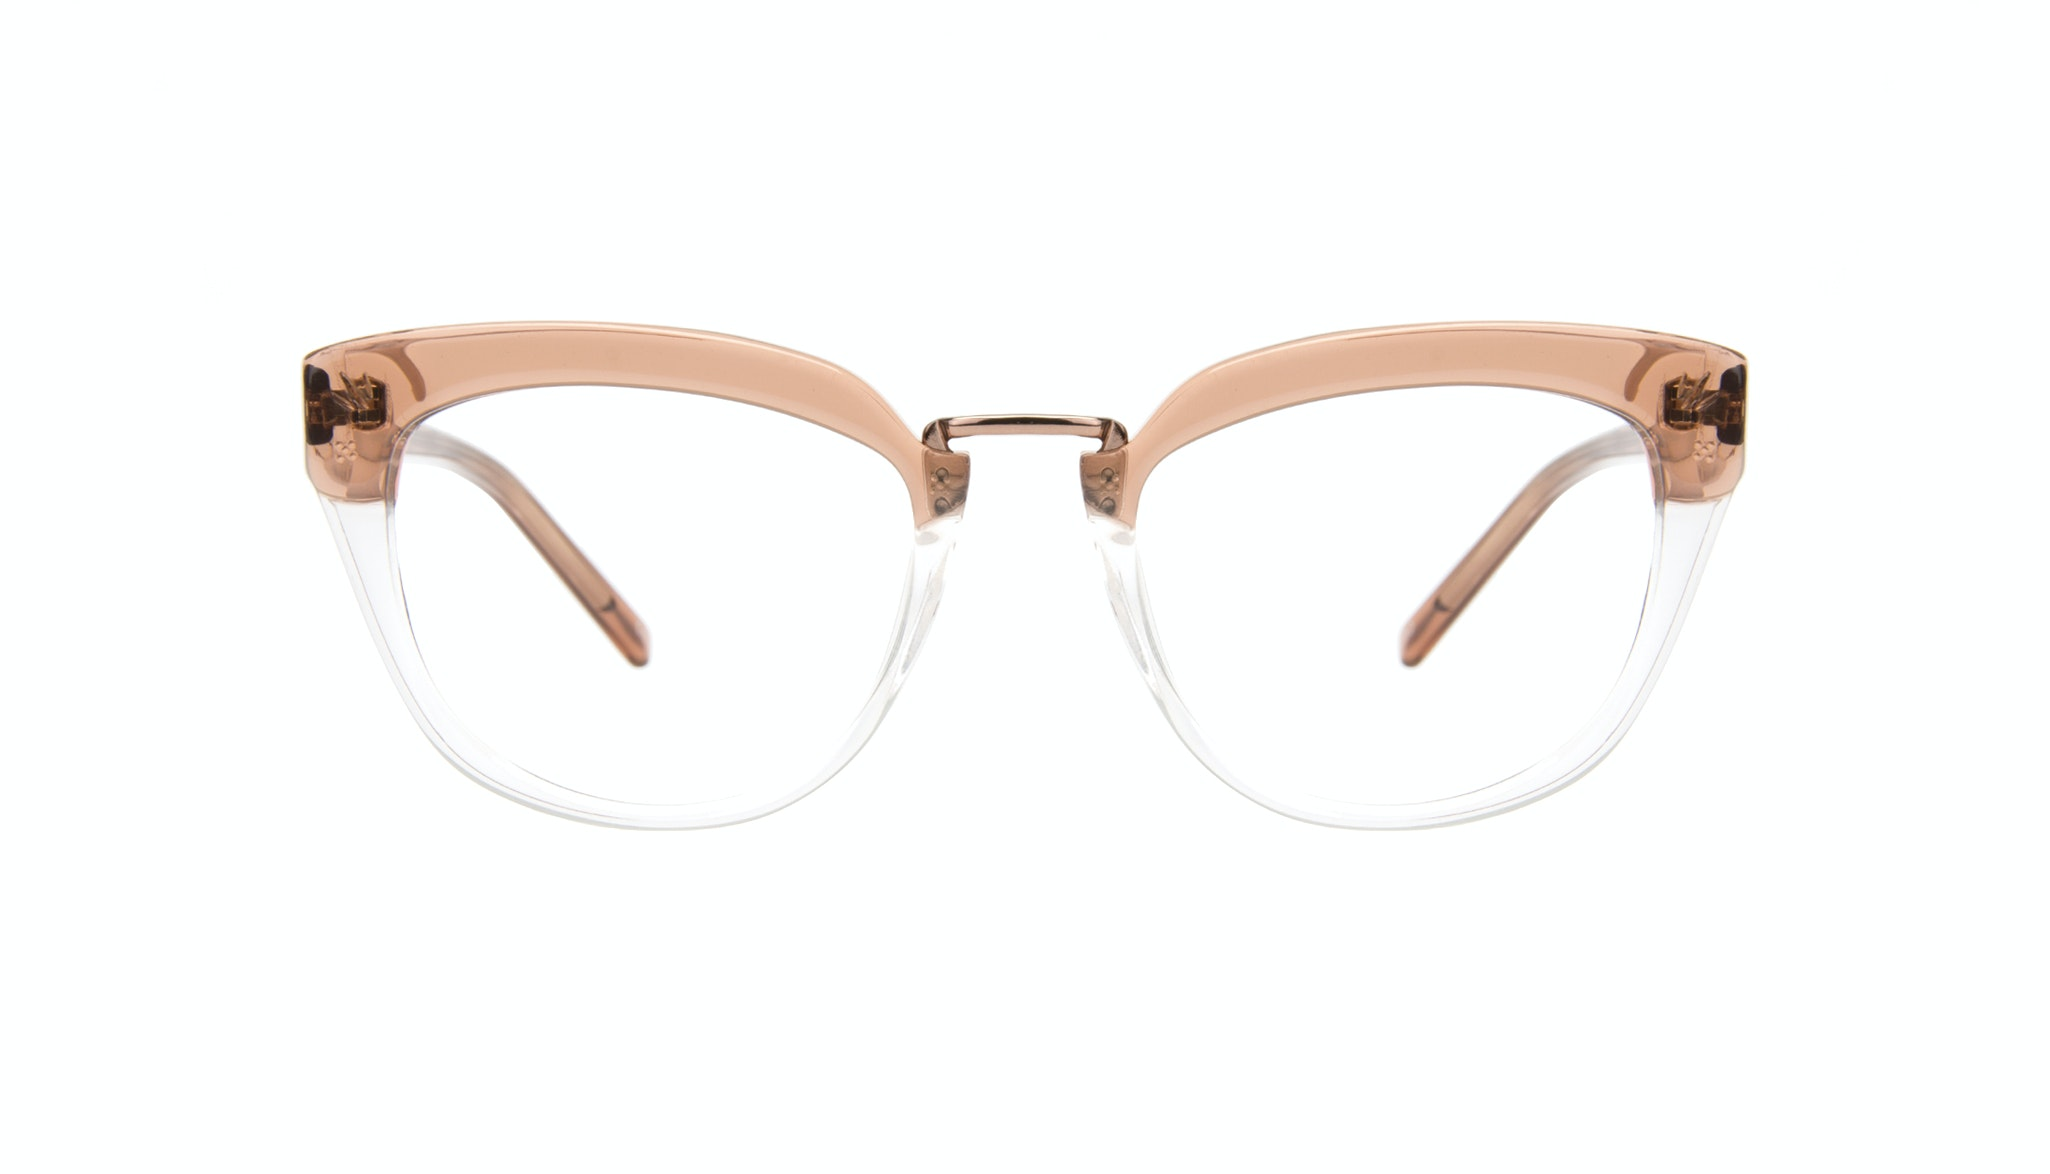 Affordable Fashion Glasses Cat Eye Daring Cateye Eyeglasses Women Pure Rose Front